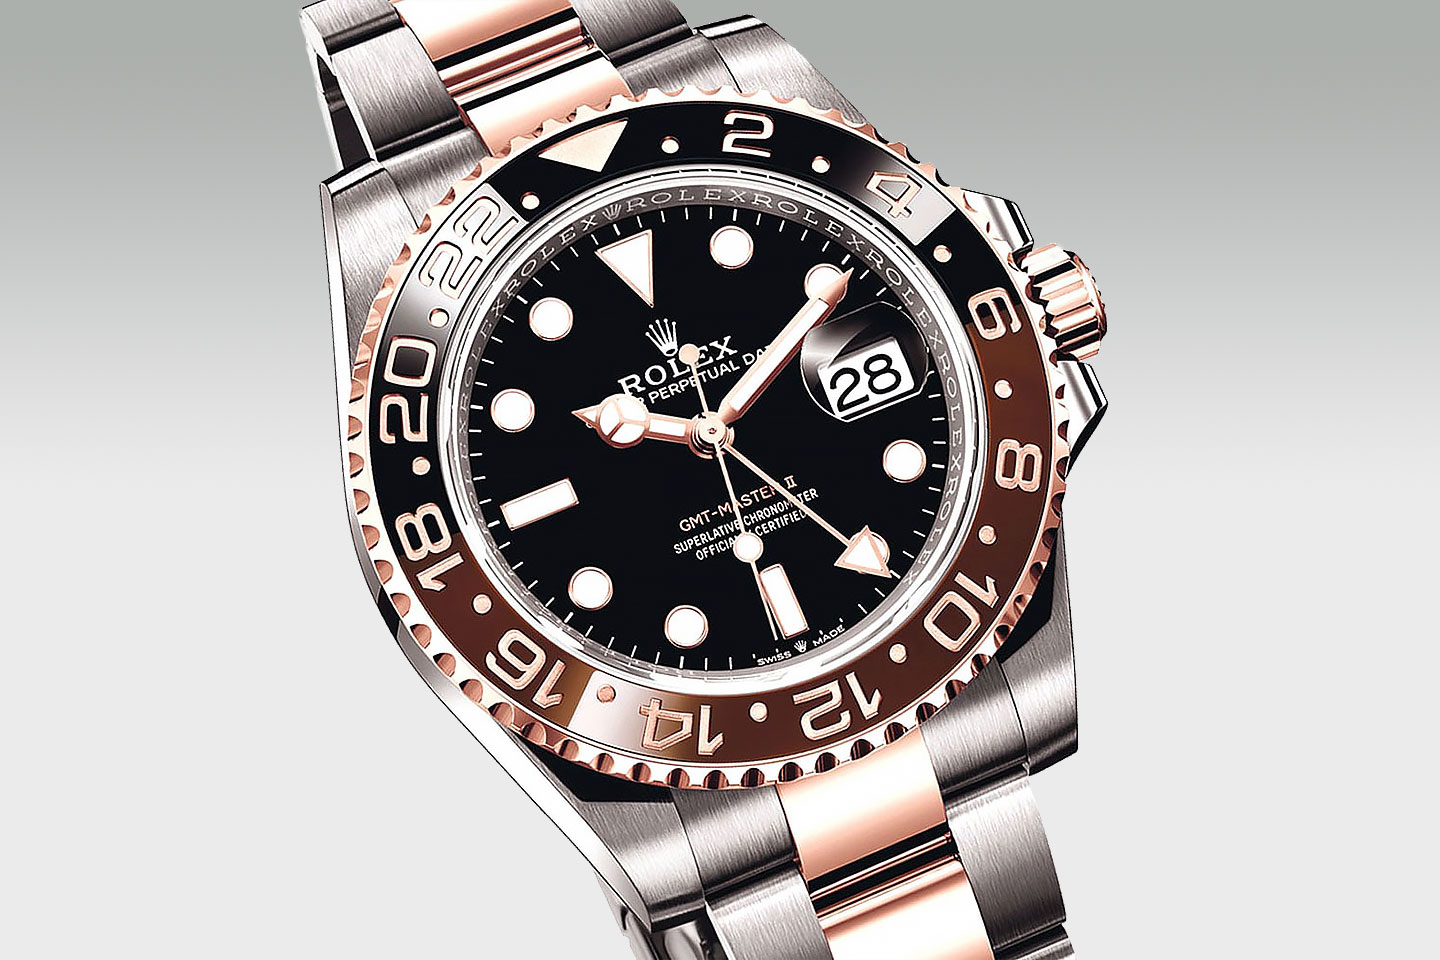 Swiss Replica Rolex Watches | Best Rolex Replica Swiss Watches